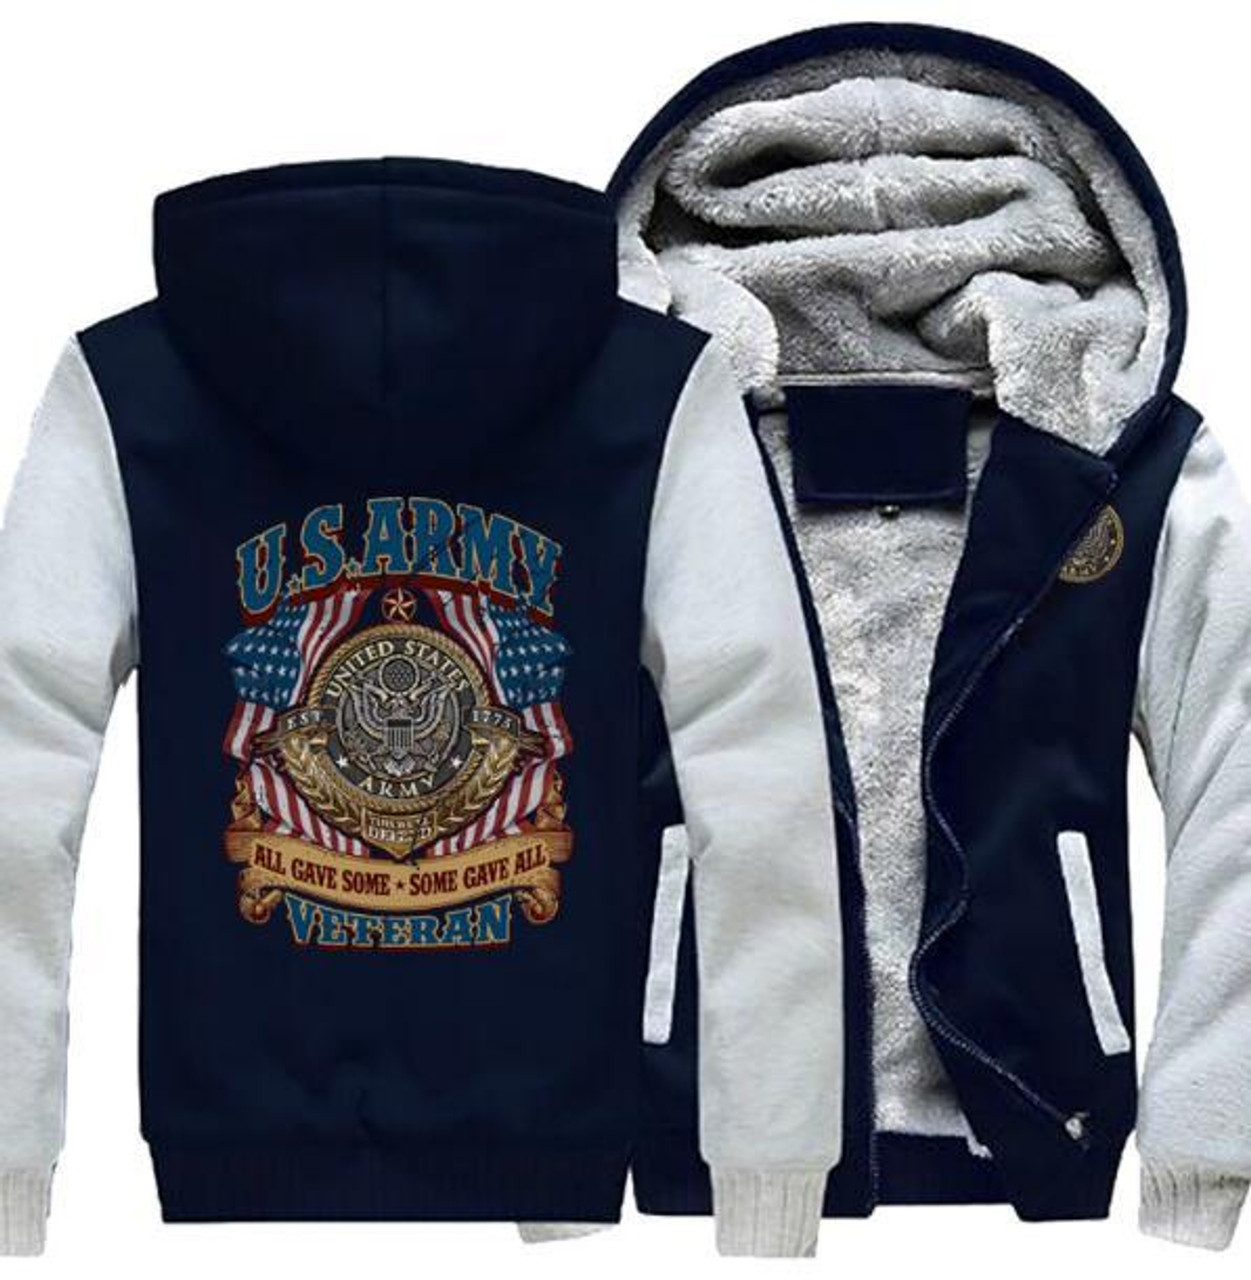 **(NEW-OFFICIALLY-LICENSED-U.S. ARMY-VETERAN-HOODIES,ALL-GAVE-SOME & SOME-GAVE-ALL/WITH-OFFICIAL-CLASSIC-ARMY-SHIELD & PATRIOT-FLAGS/NICE-CUSTOM-3D-GRAPHIC-PRINTED/DOUBLE-SIDED-HEAVY-FLEECE-ZIPPER-UP-HOODIES)**